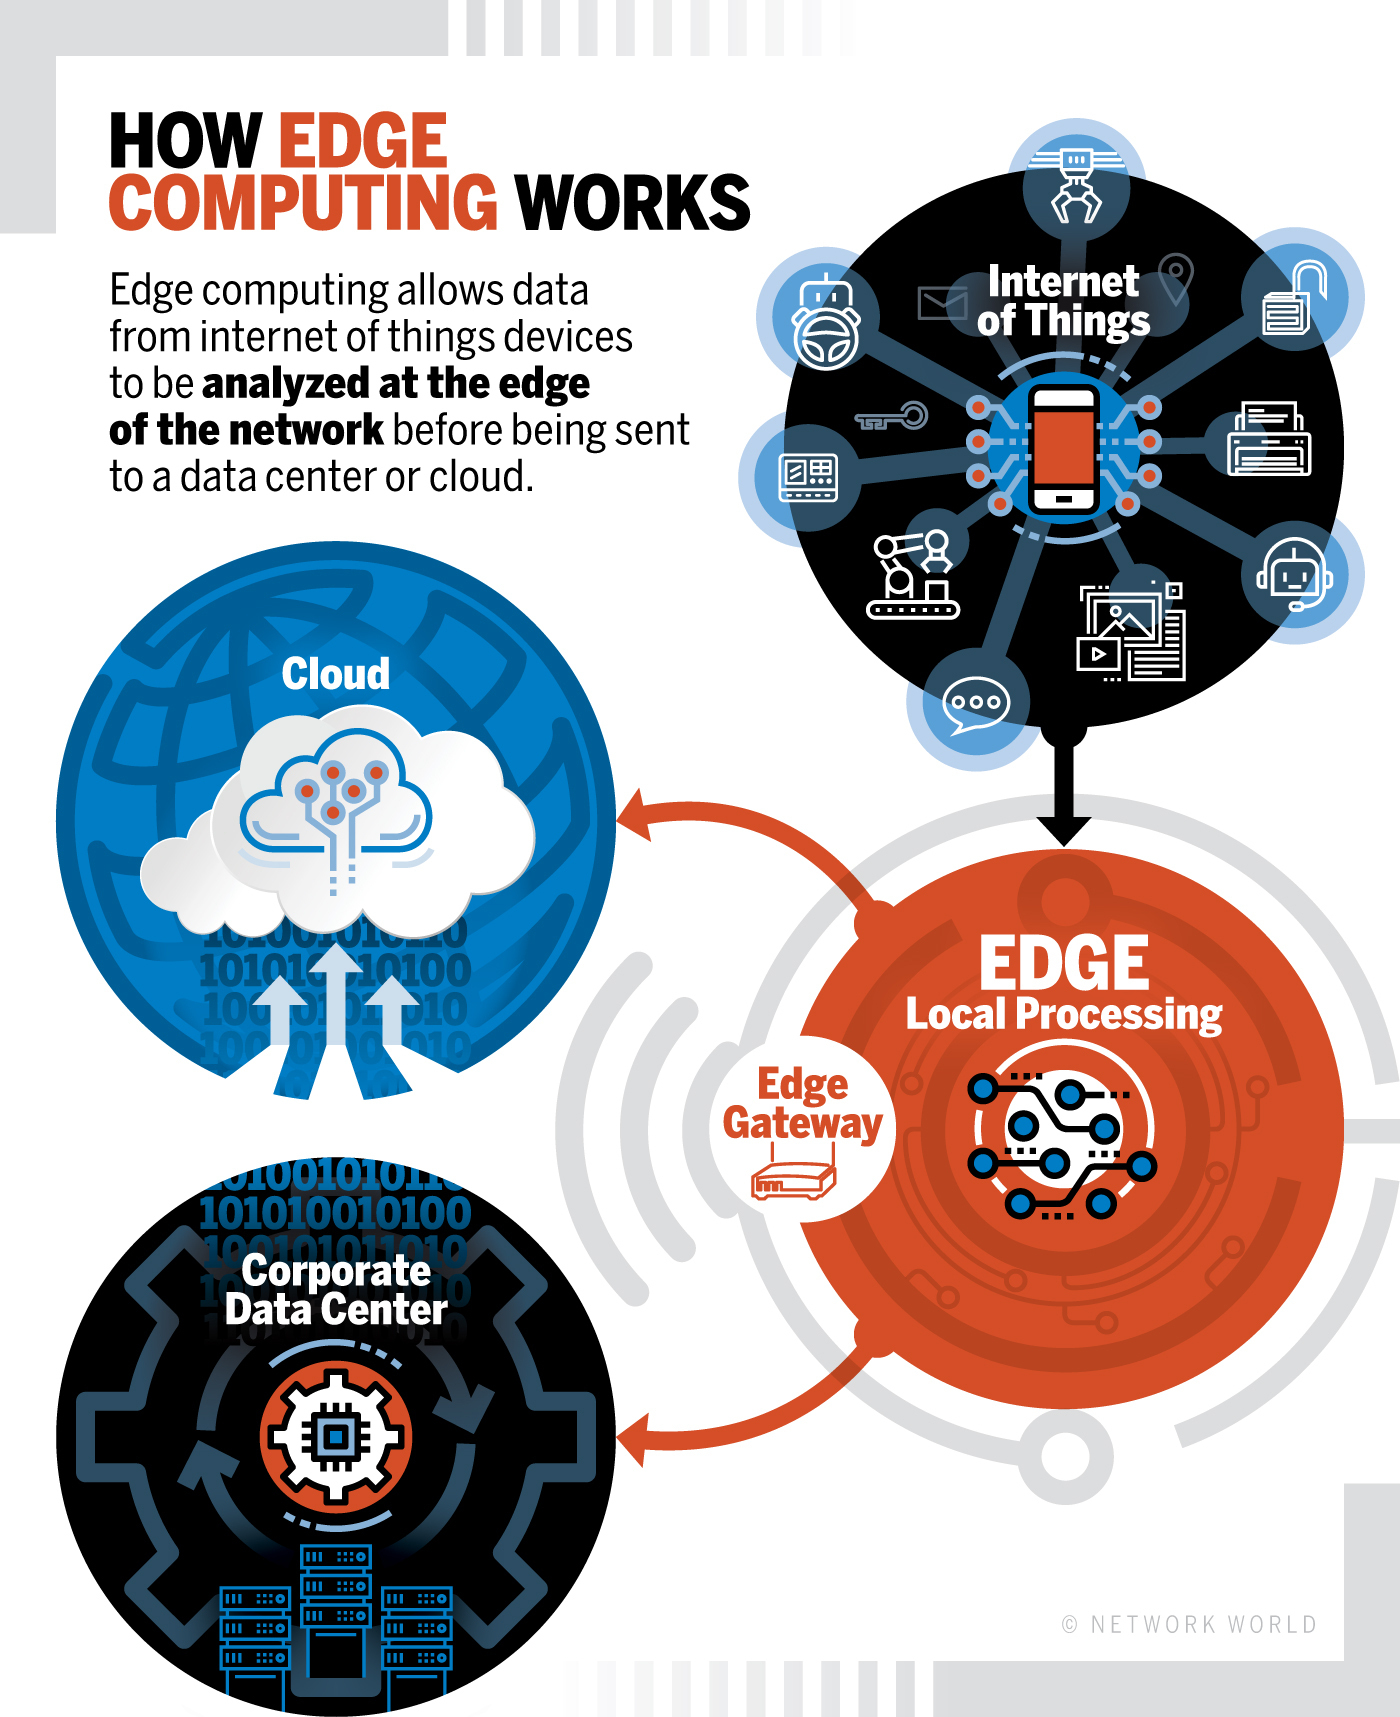 nw_how_edge_computing_works_diagram